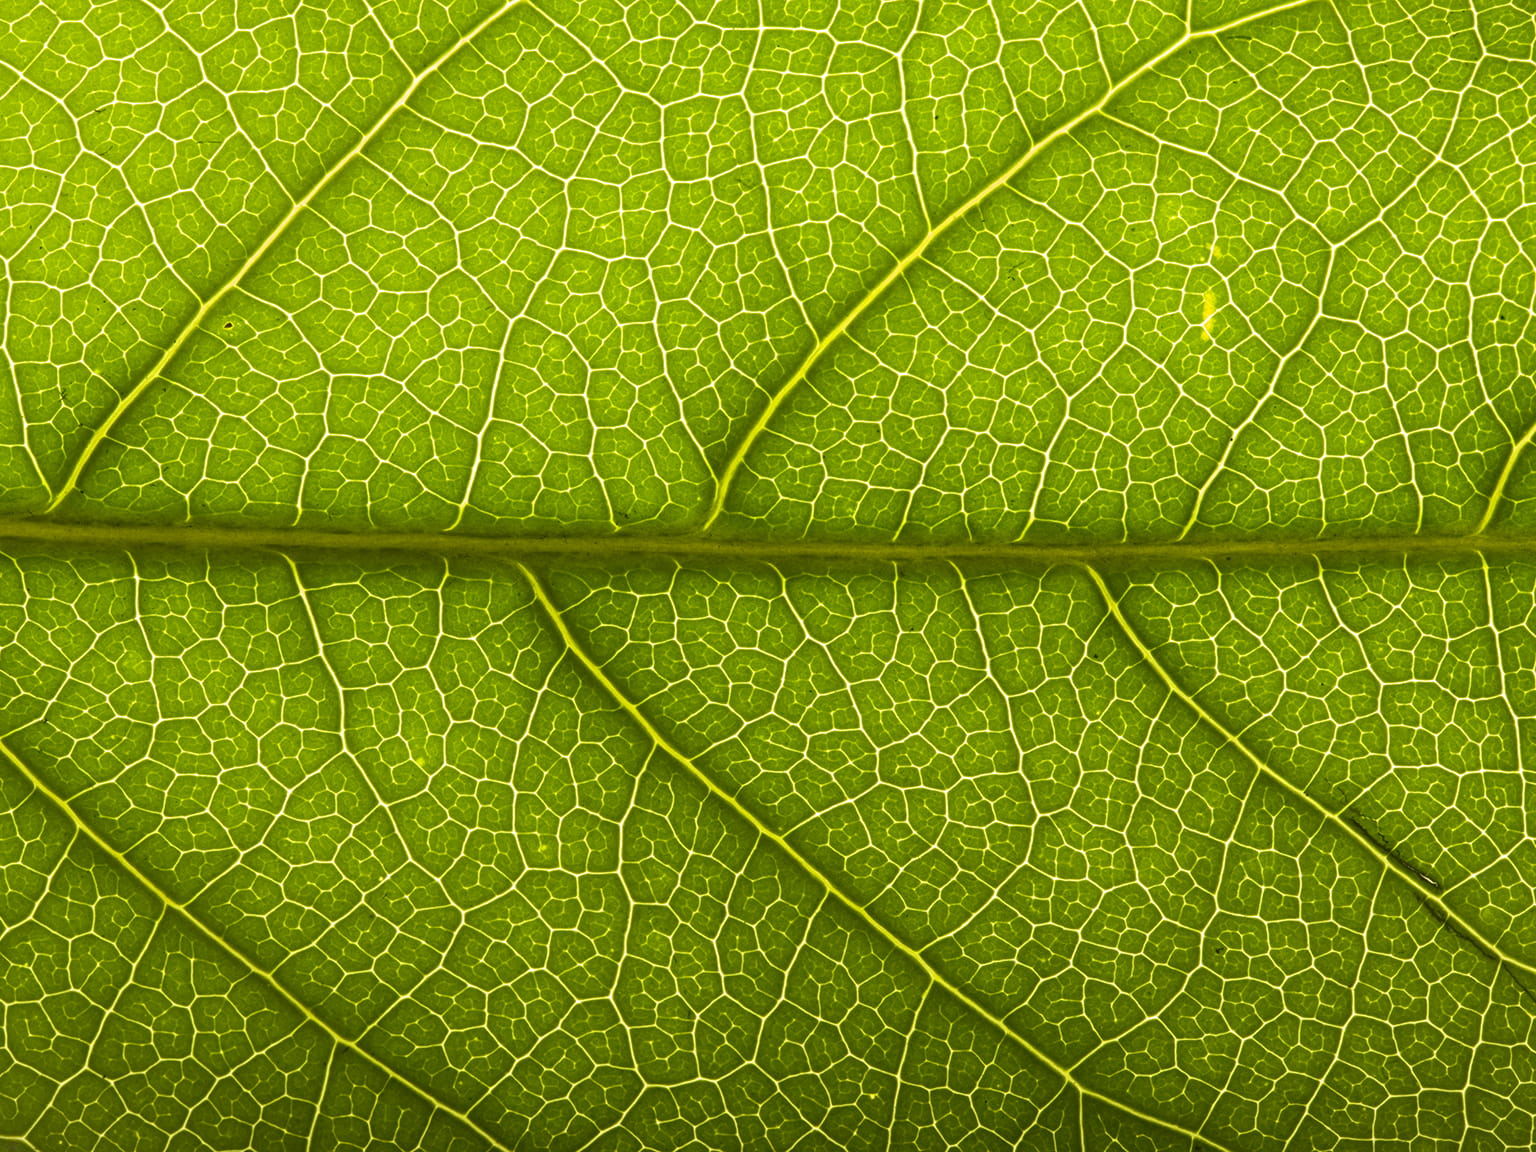 Green Leaf Detail Environmental